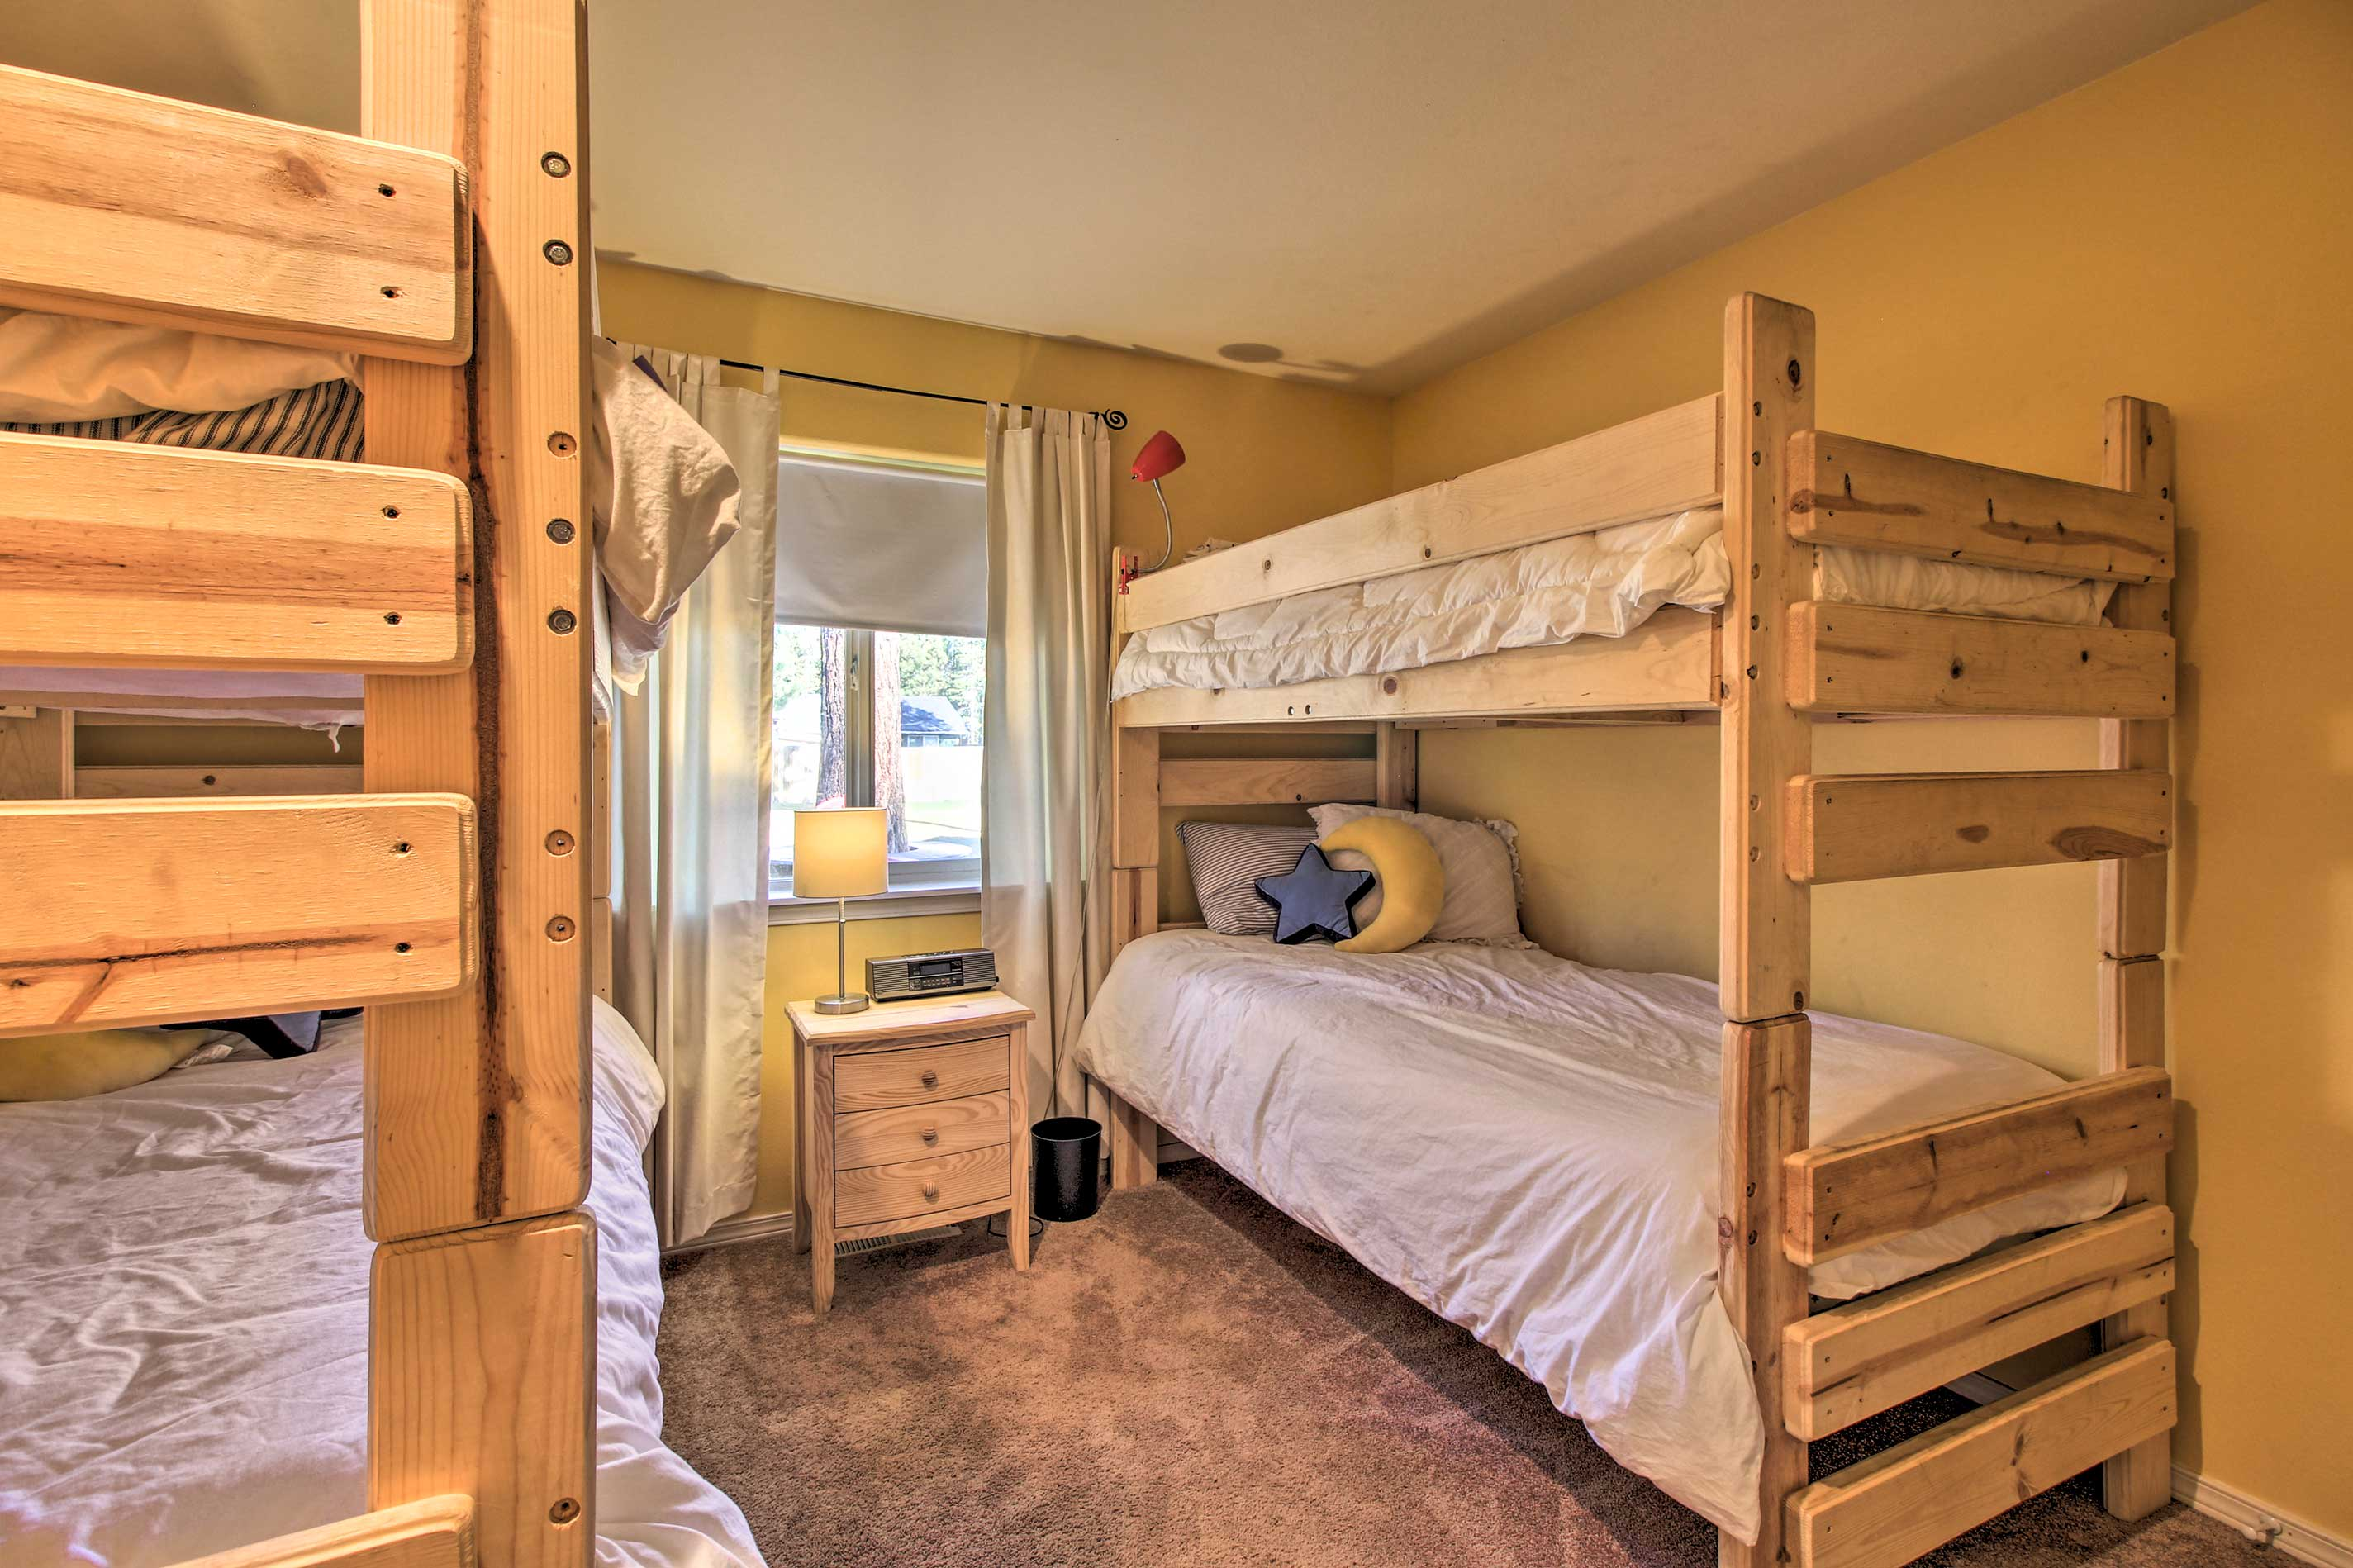 Four kids will love bunking together in this room.